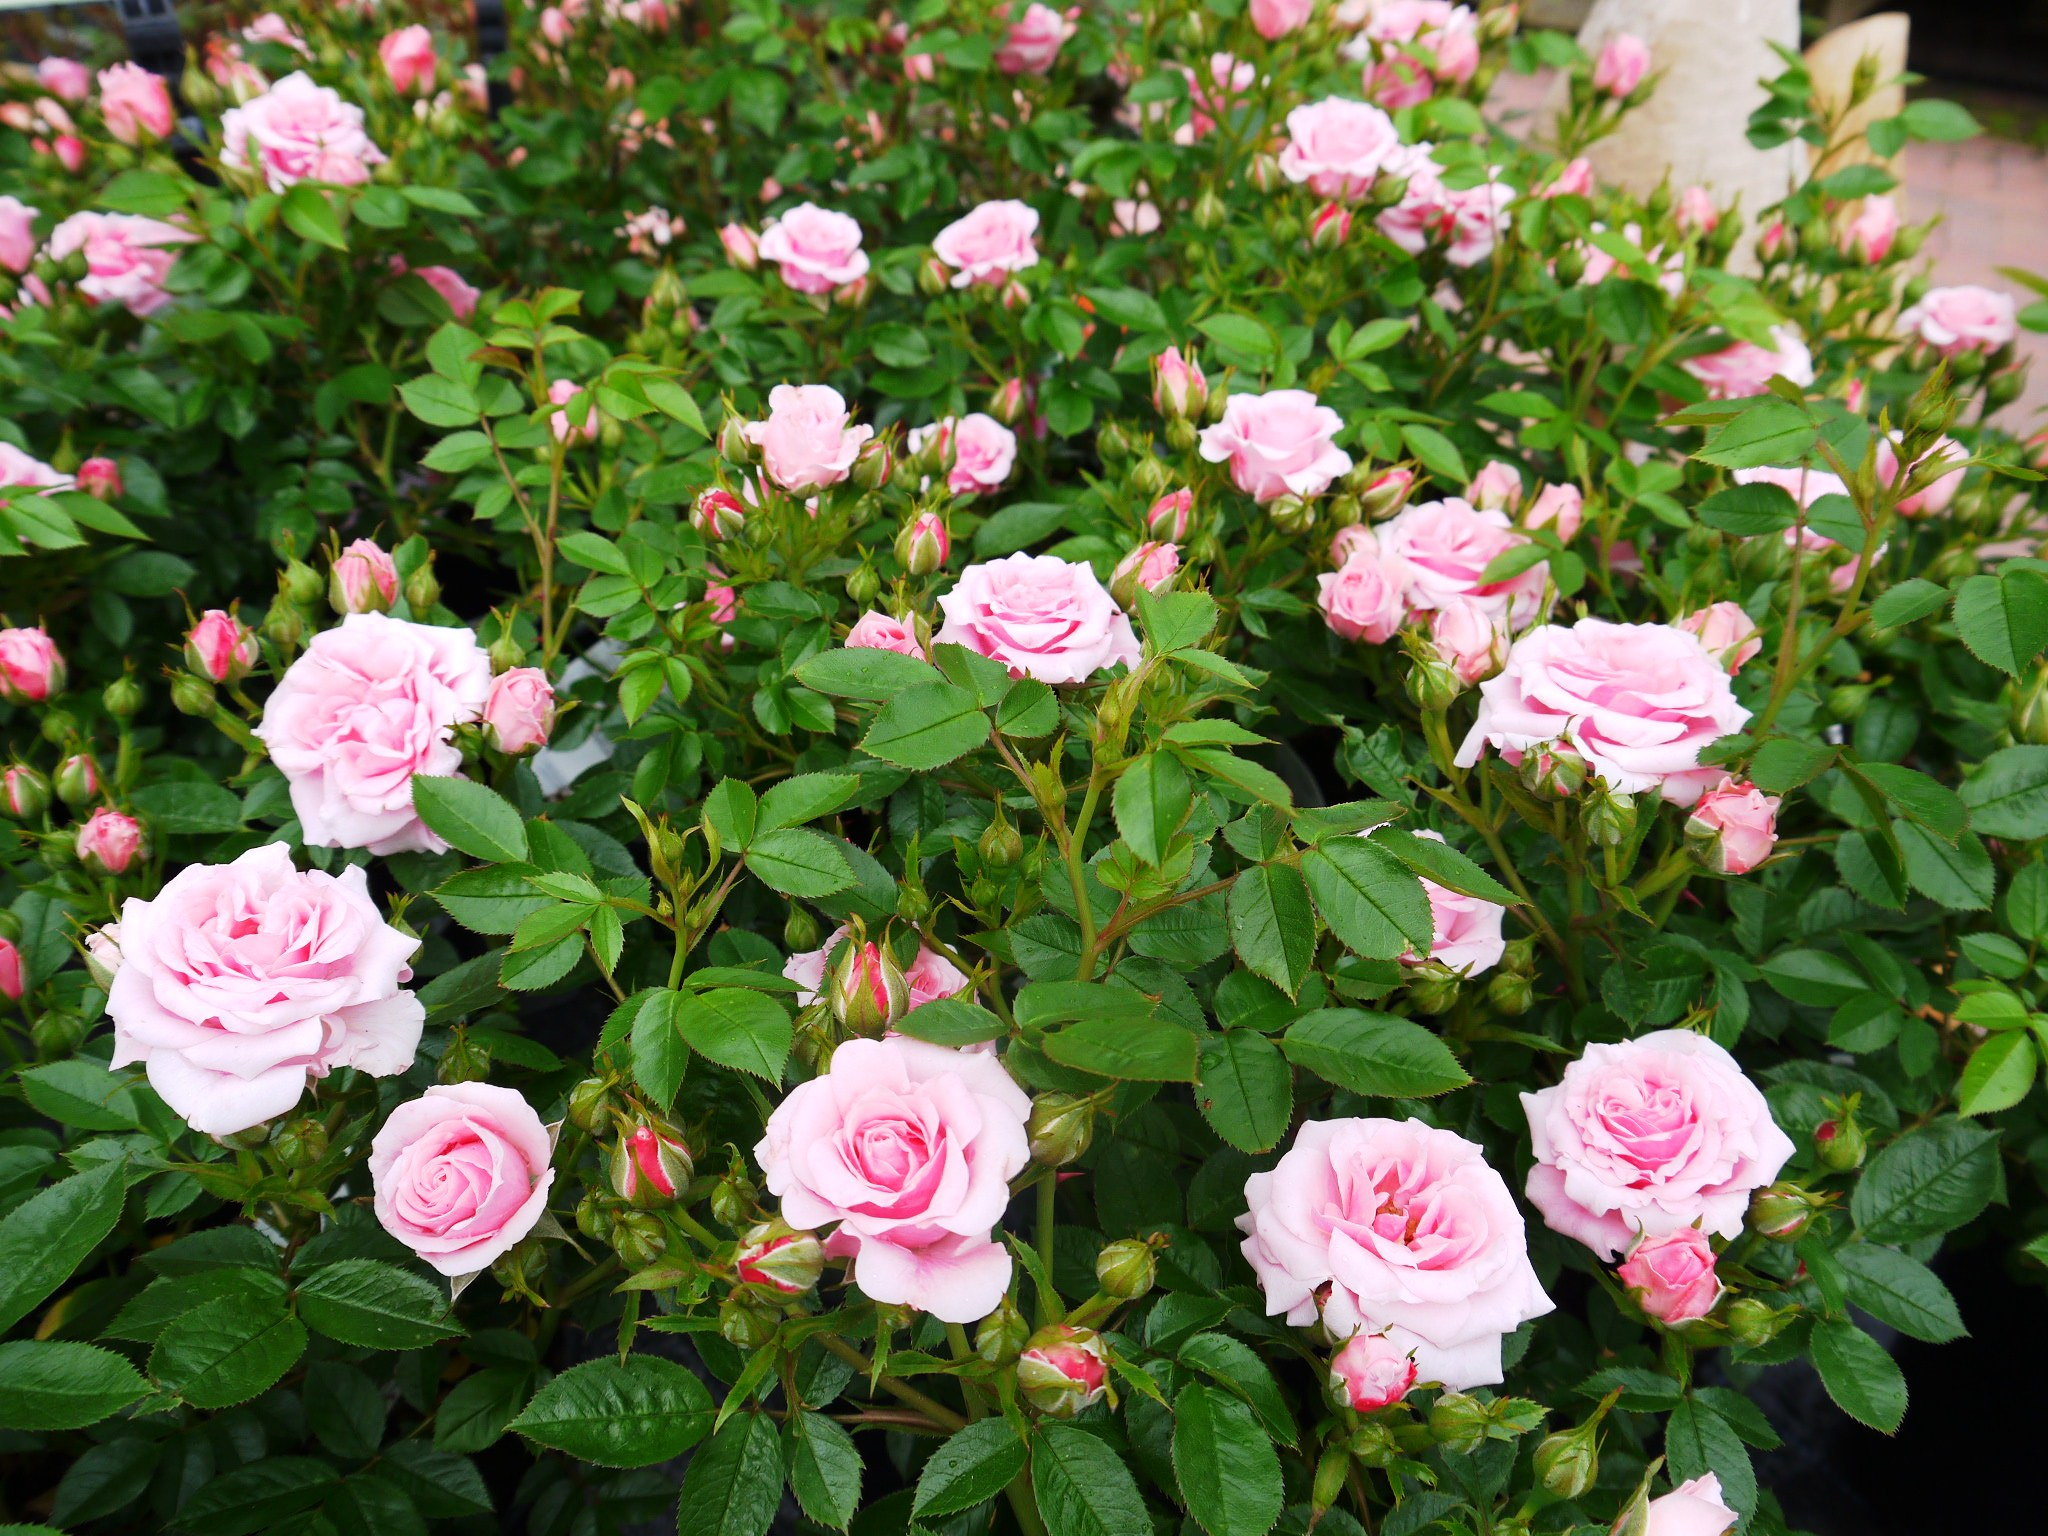 Best Tips To Maintain Quality Of Roses To Enjoy Fast Rose Delivery Services!